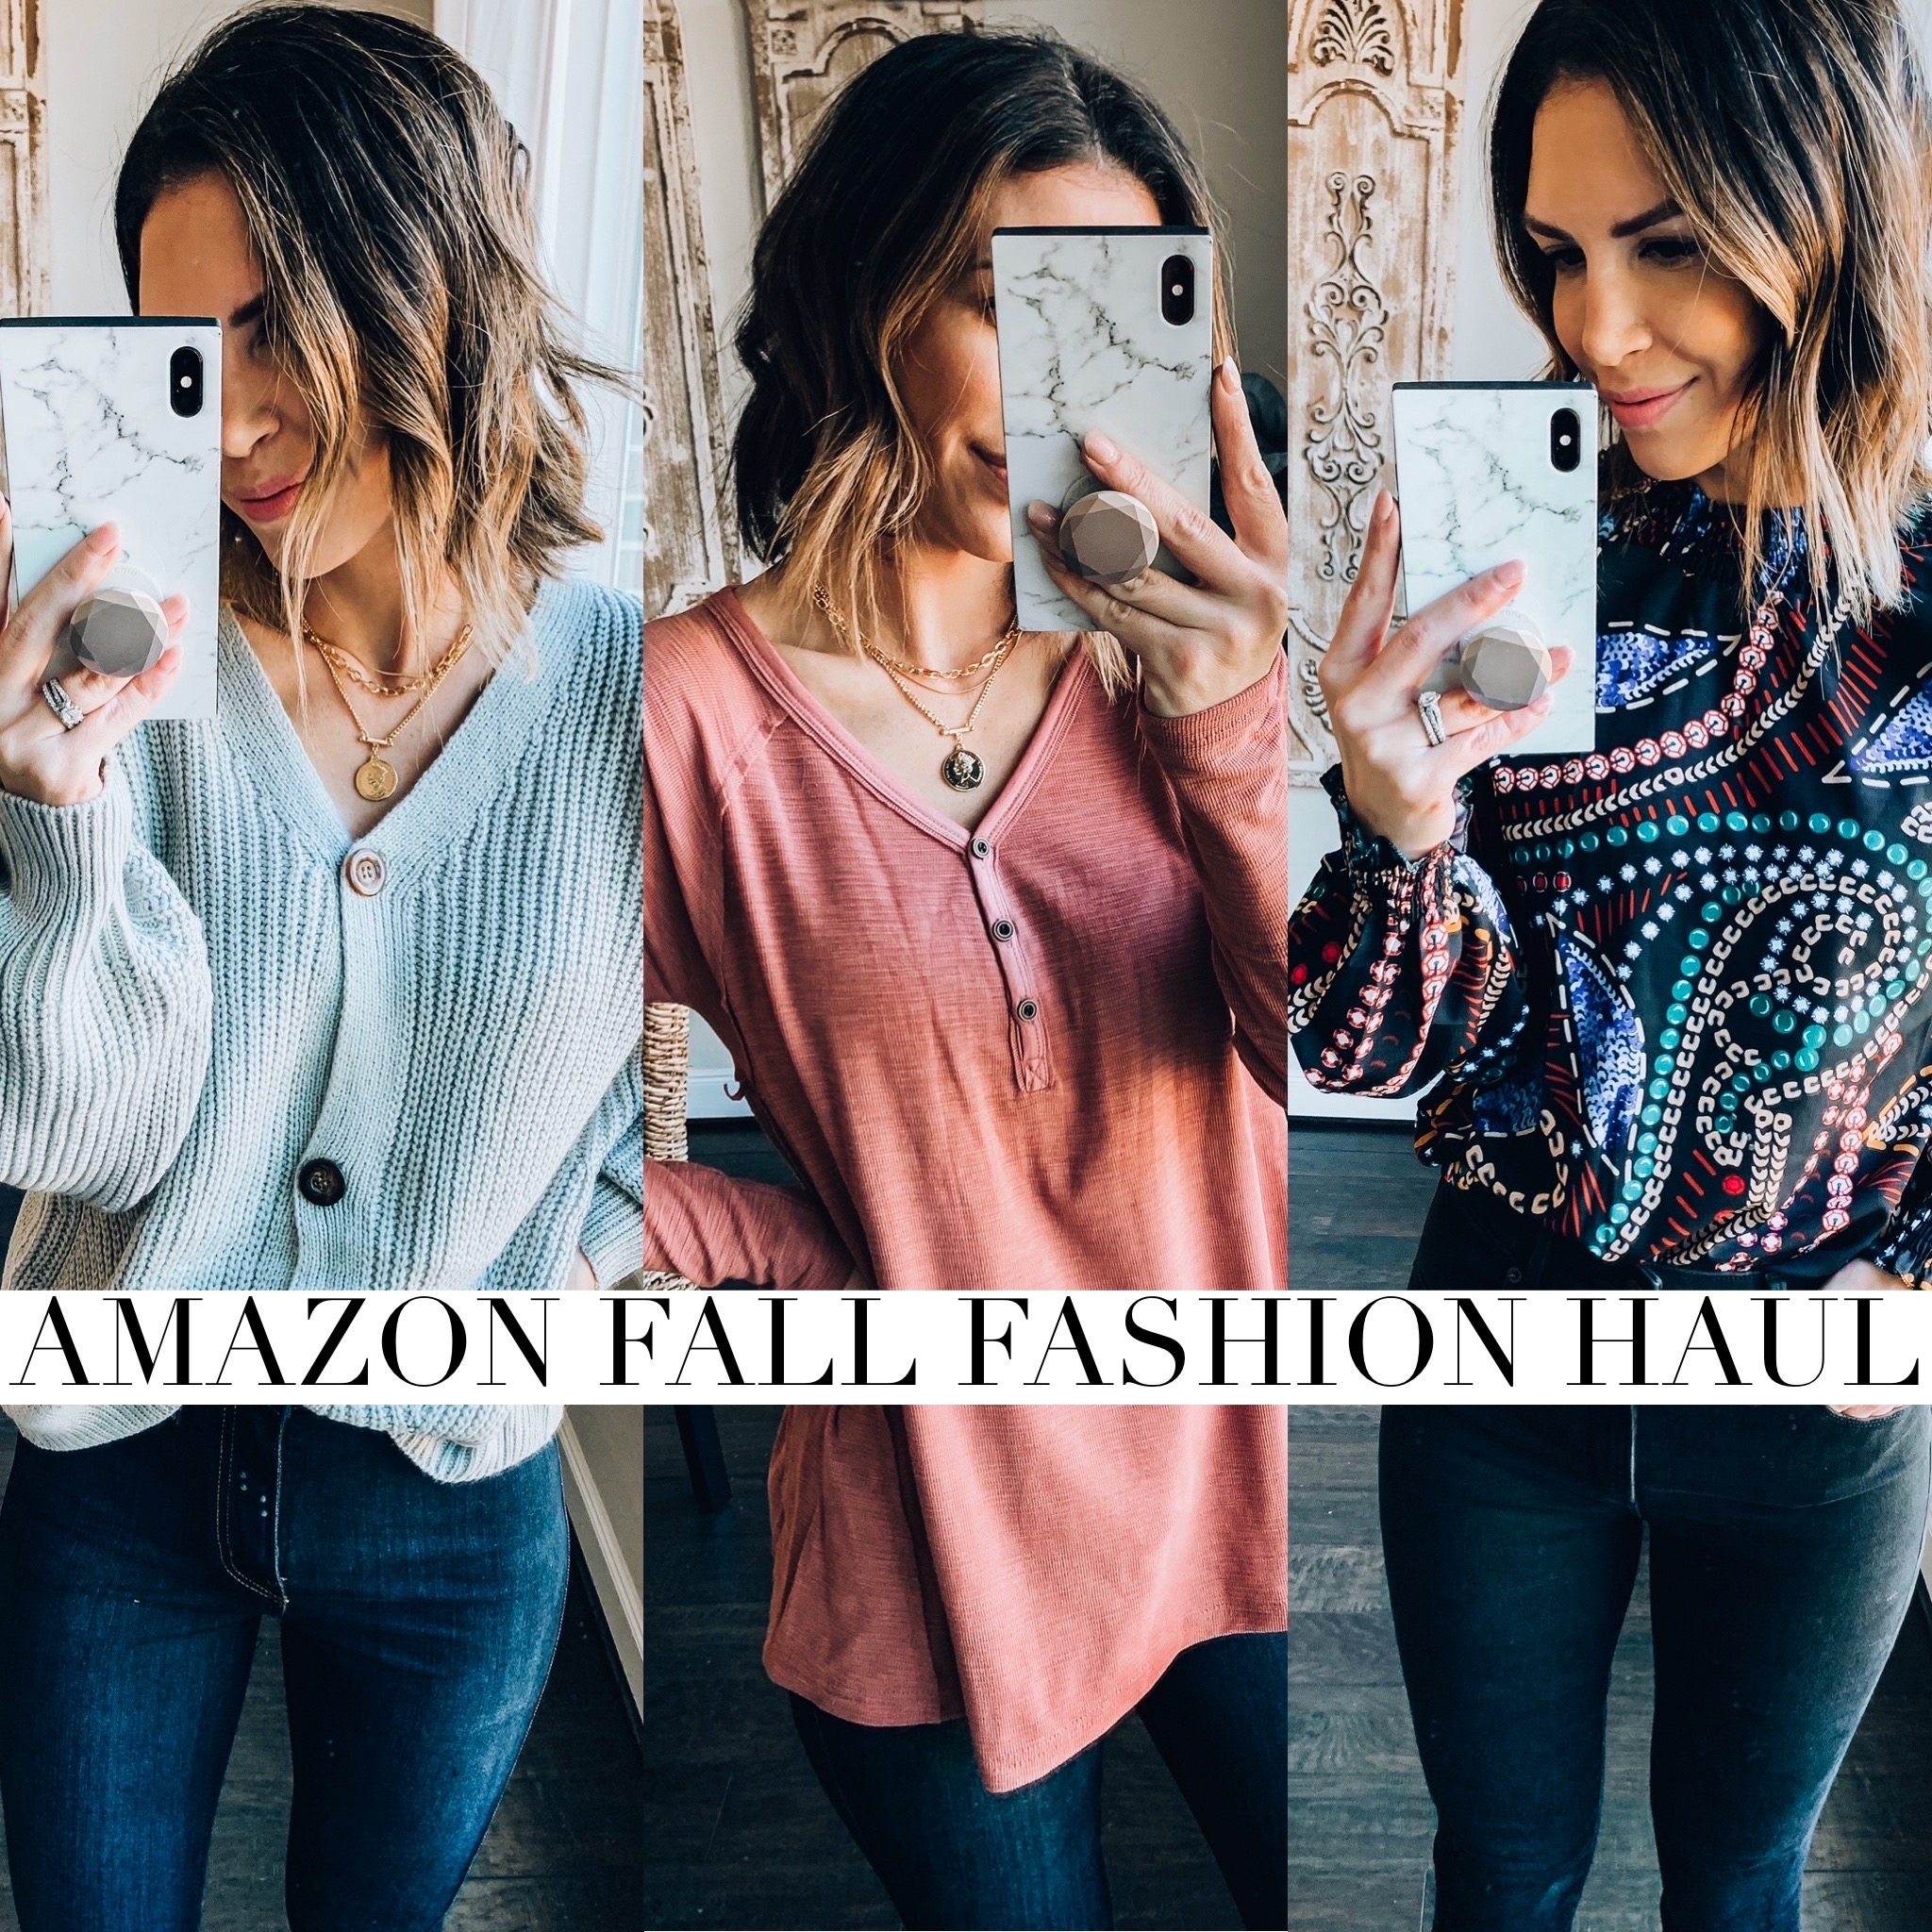 Amazon Fall Fashion Blog Post